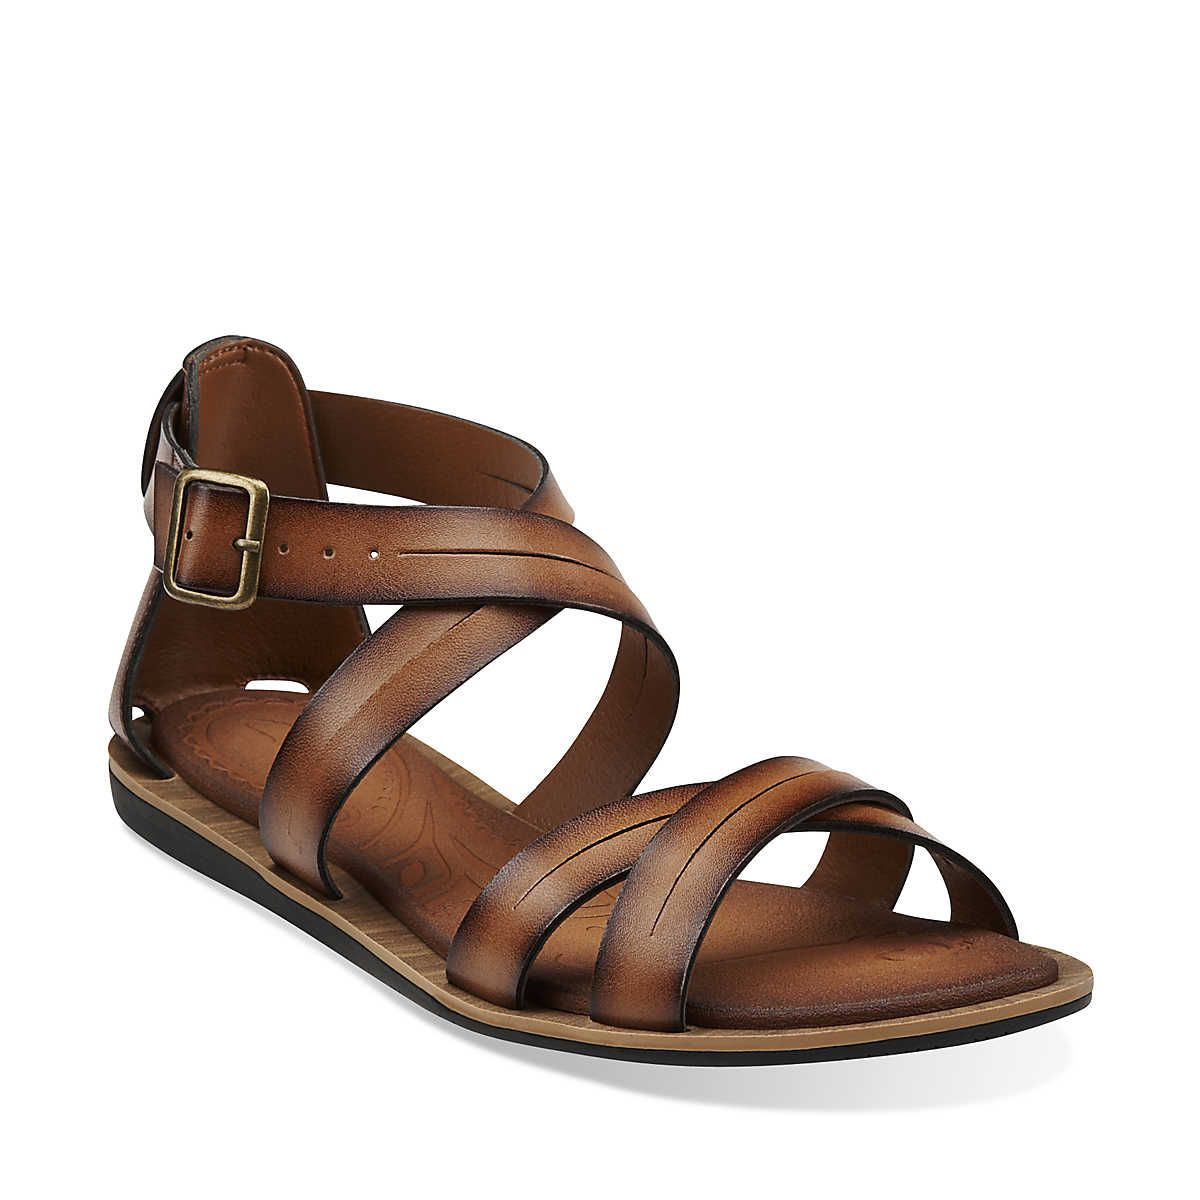 1bd1445d6a4e64 Billie Jazz in Honey Synthetic - Womens Sandals from Clarks